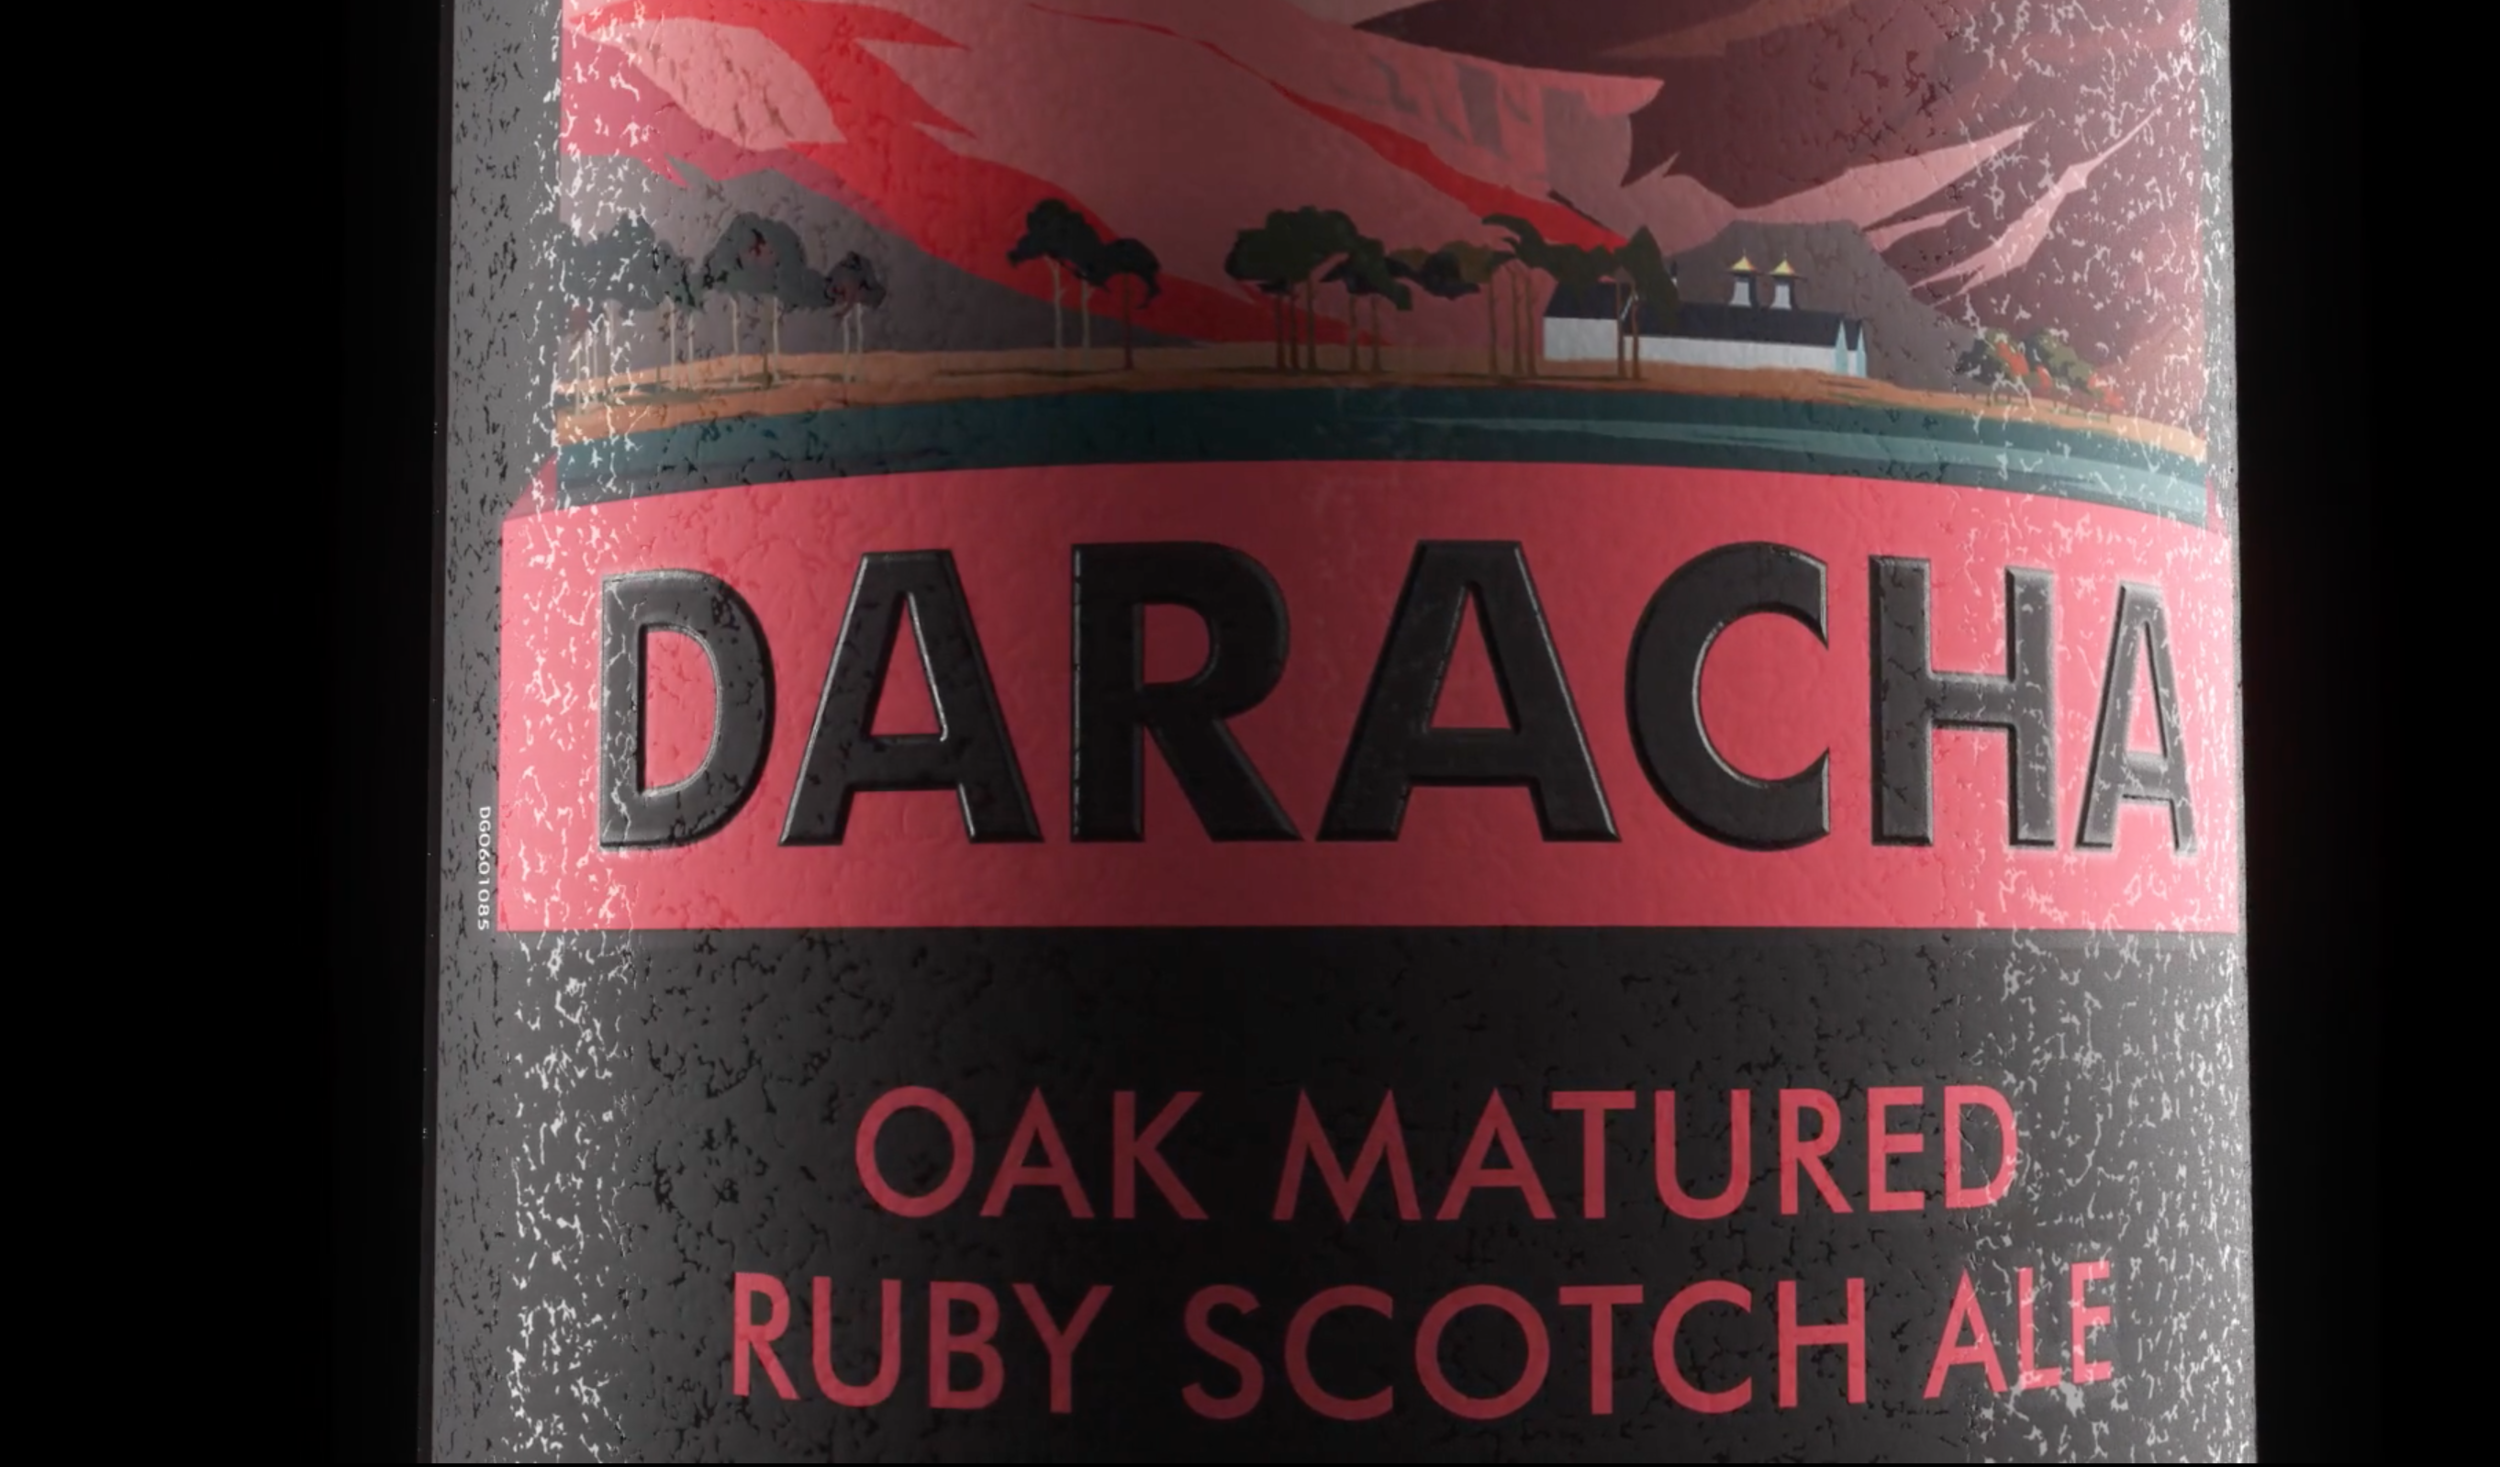 Textural detail of  Daracha  label.